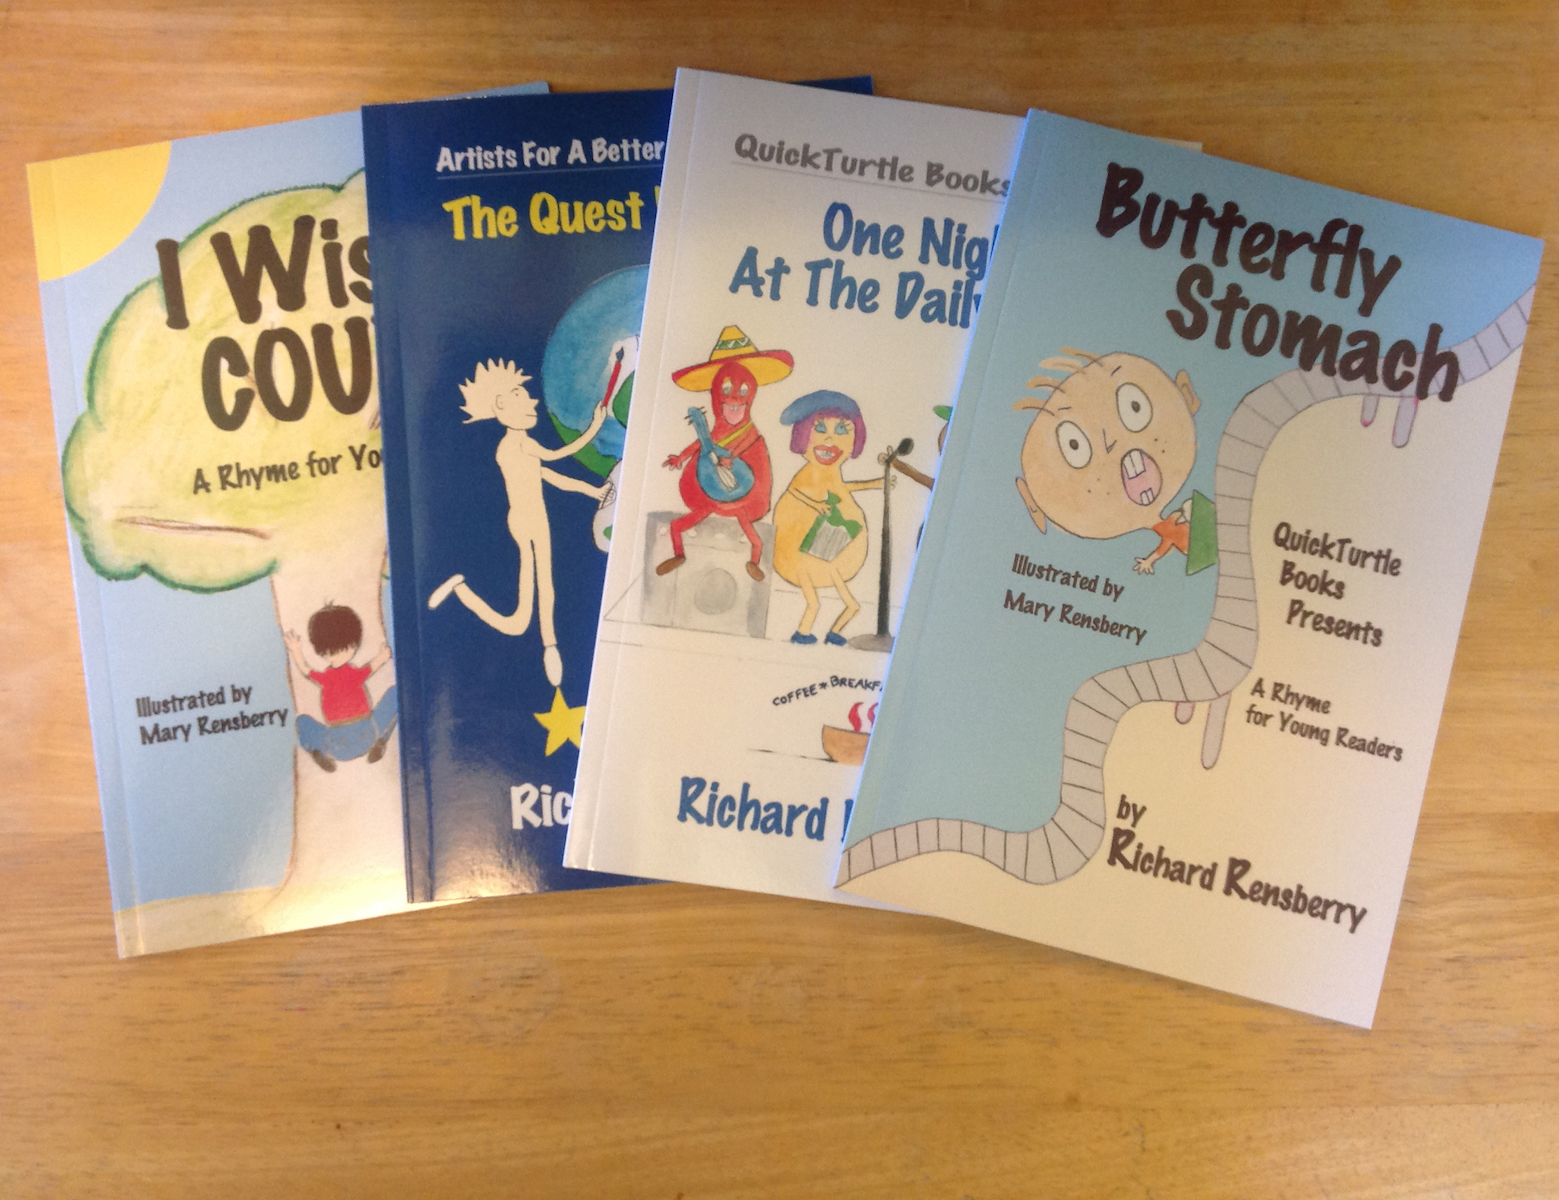 Books Make Booms brand building custom books written, illustrated and published by Richard and Mary Rensberry for Michigan businesses.